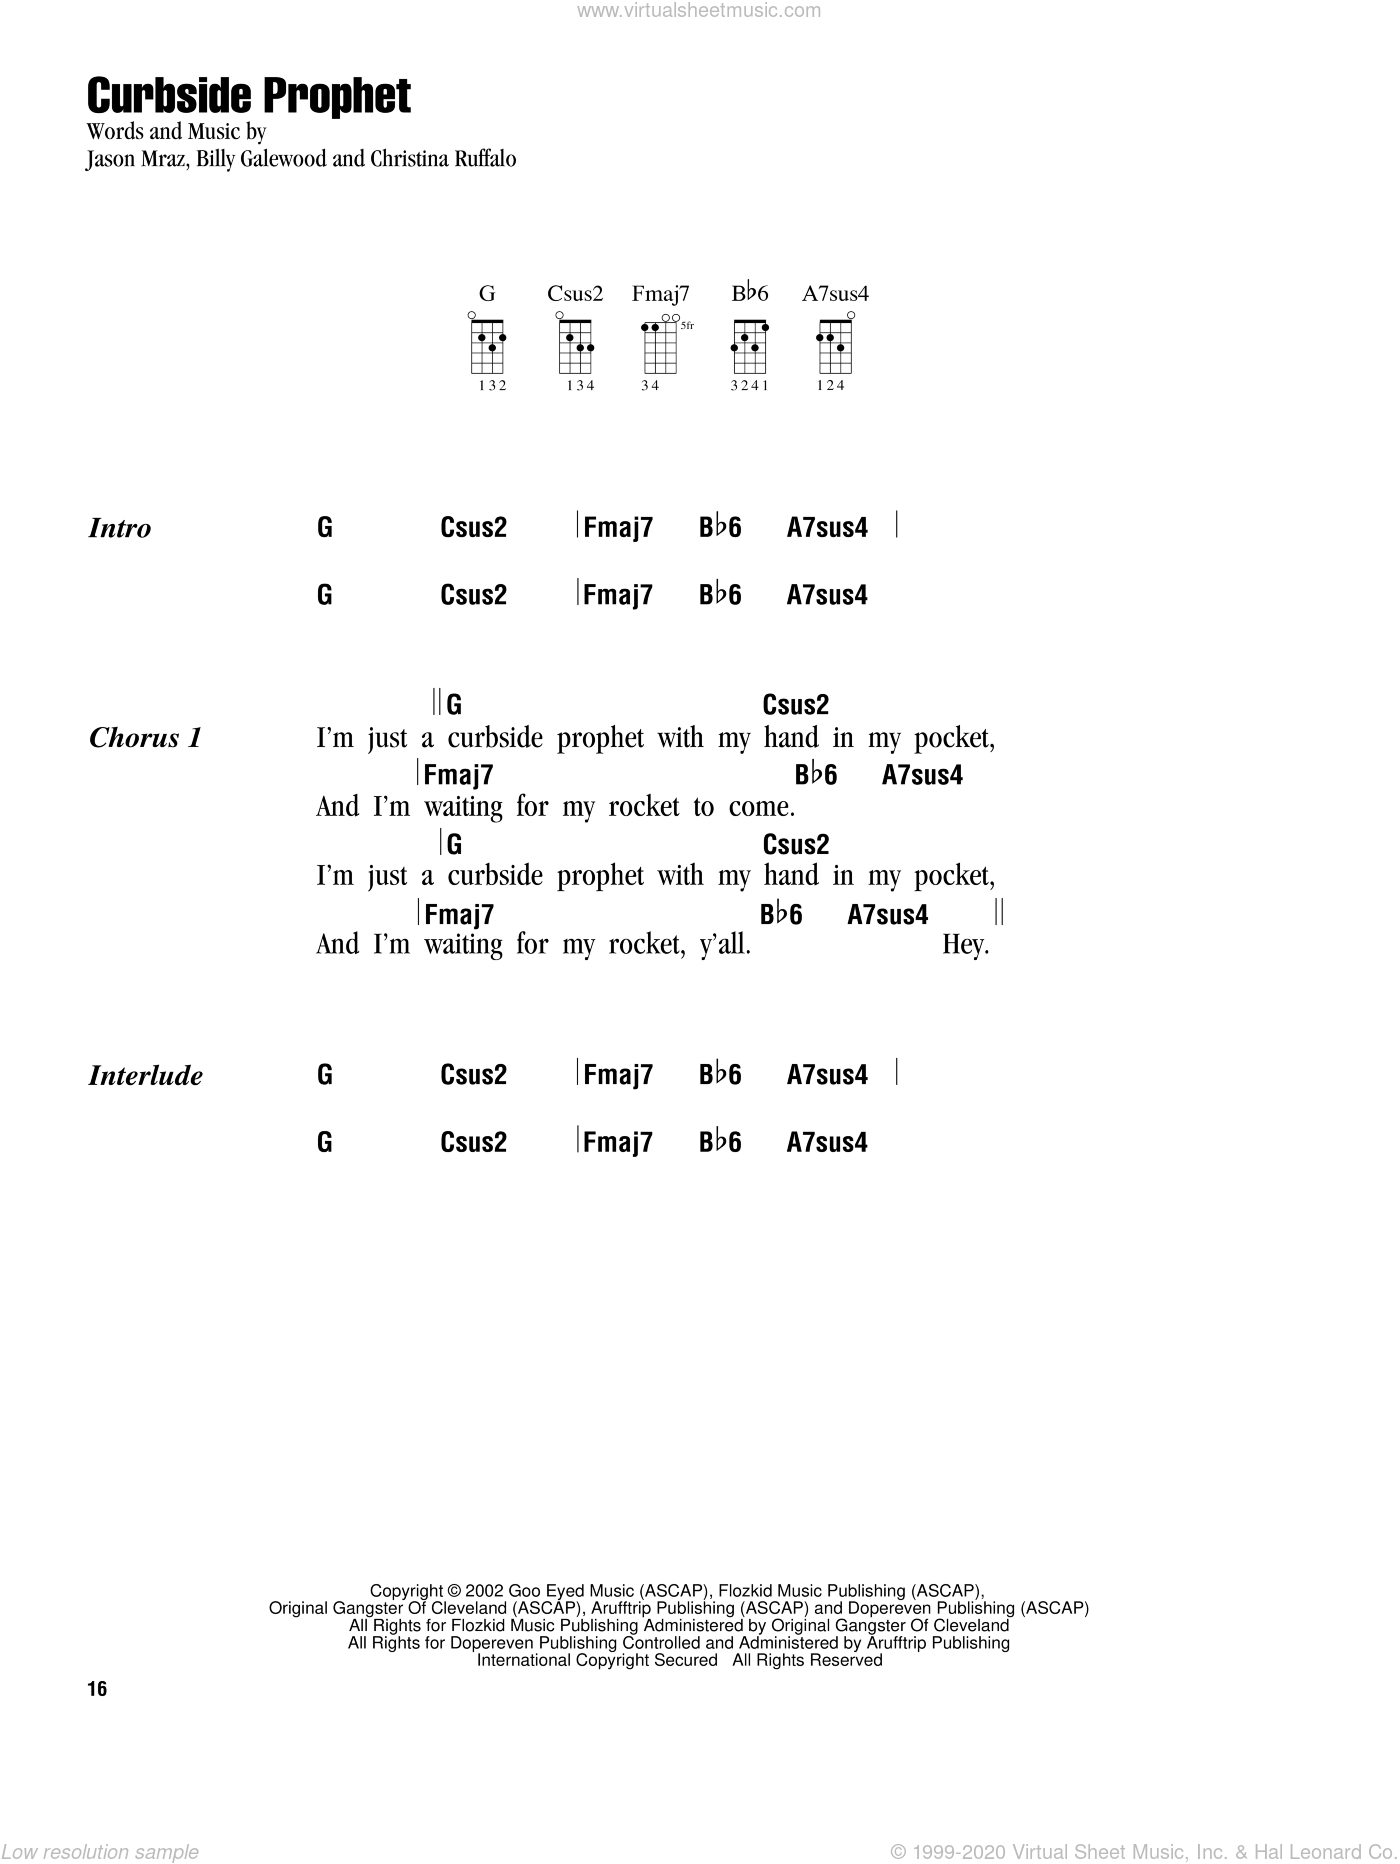 Curbside Prophet sheet music for ukulele (chords) by Jason Mraz, Bill Galewood and Christina Ruffalo, intermediate